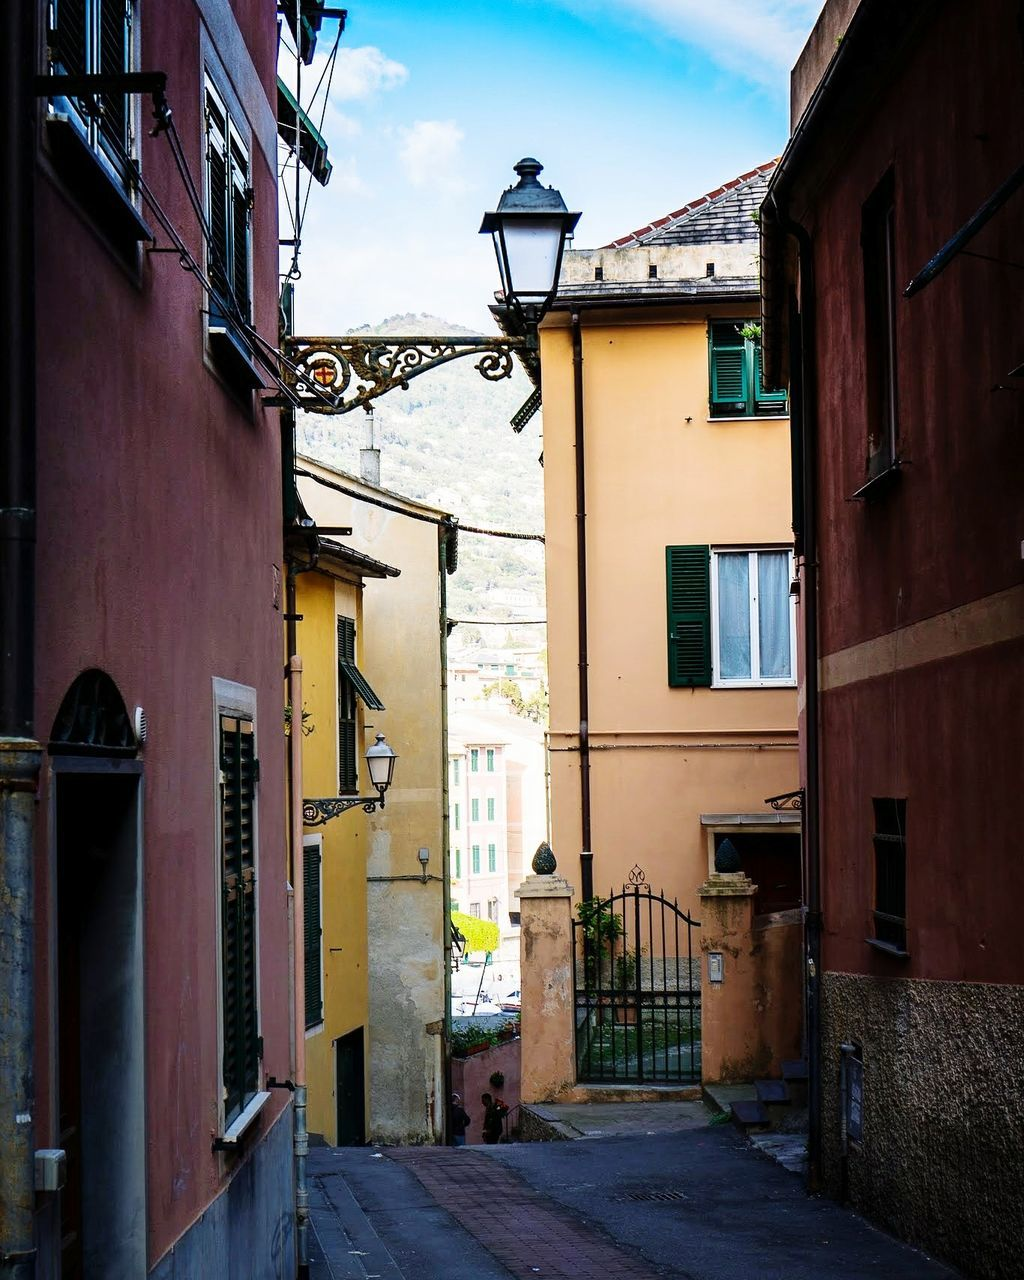 building exterior, architecture, built structure, wall lamp, outdoors, street lamp, street light, window, no people, residential building, alley, sky, the way forward, day, city